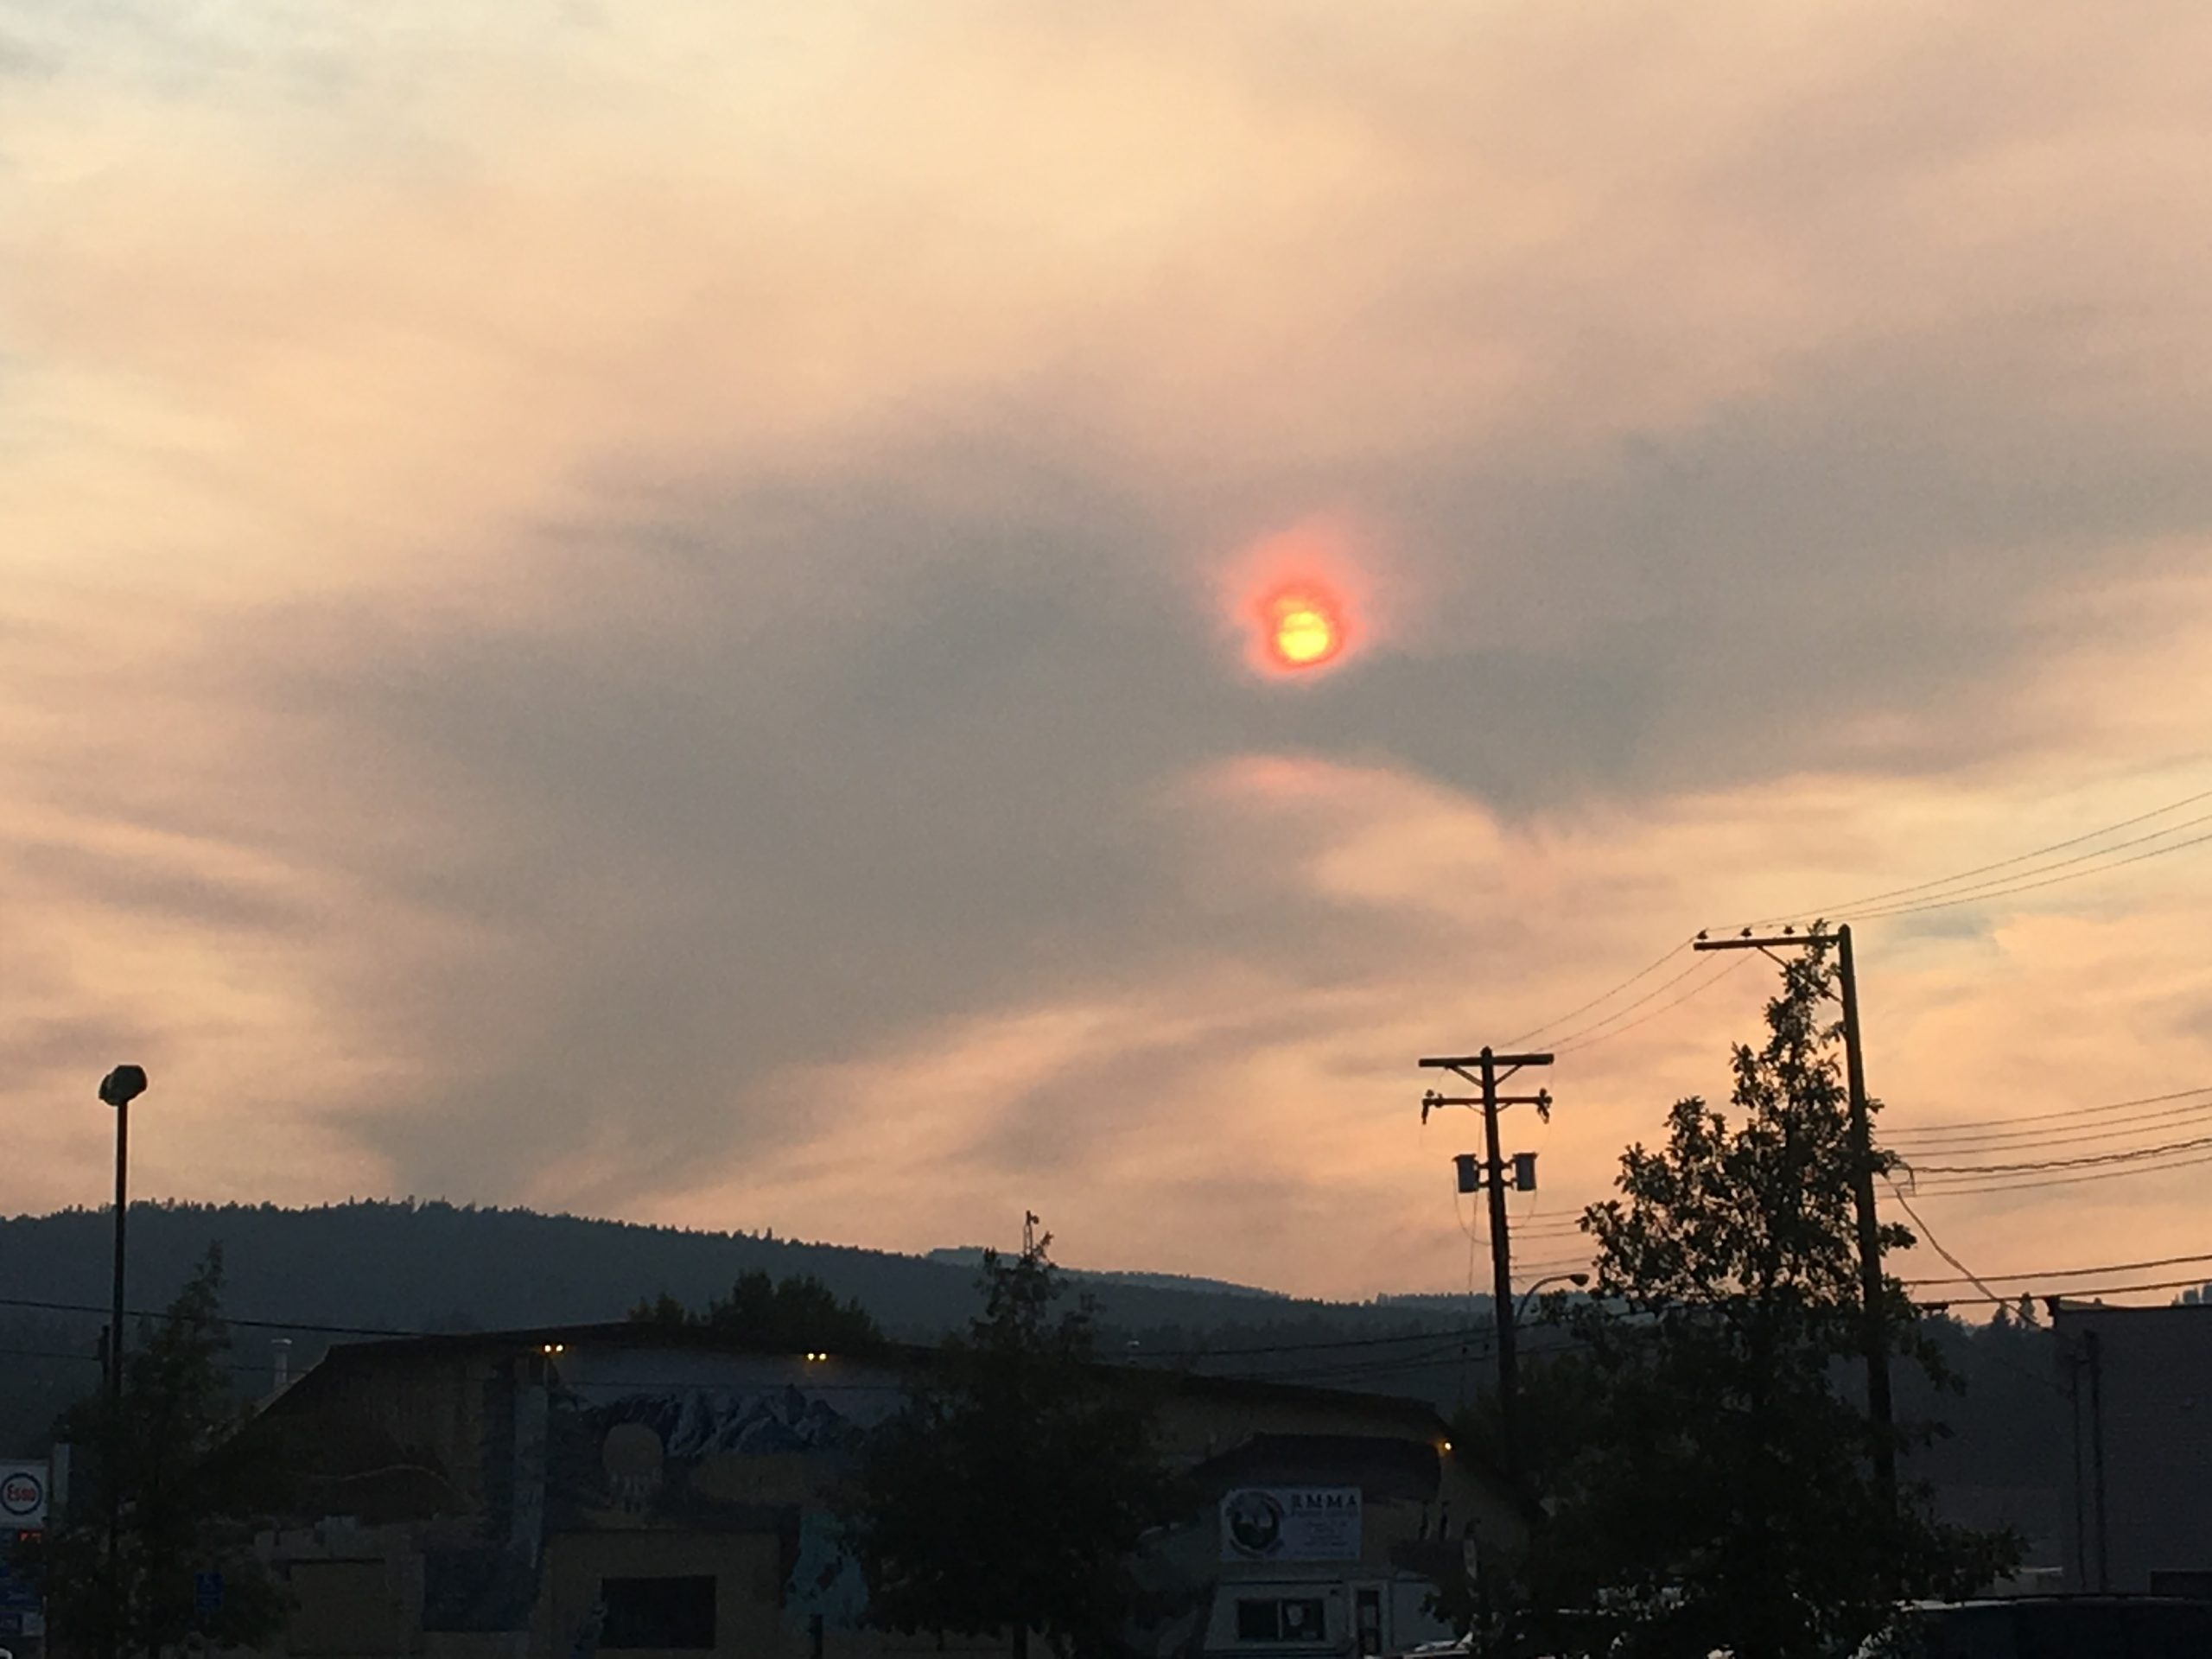 Smoky Skies Bulletin continued for East Kootenay